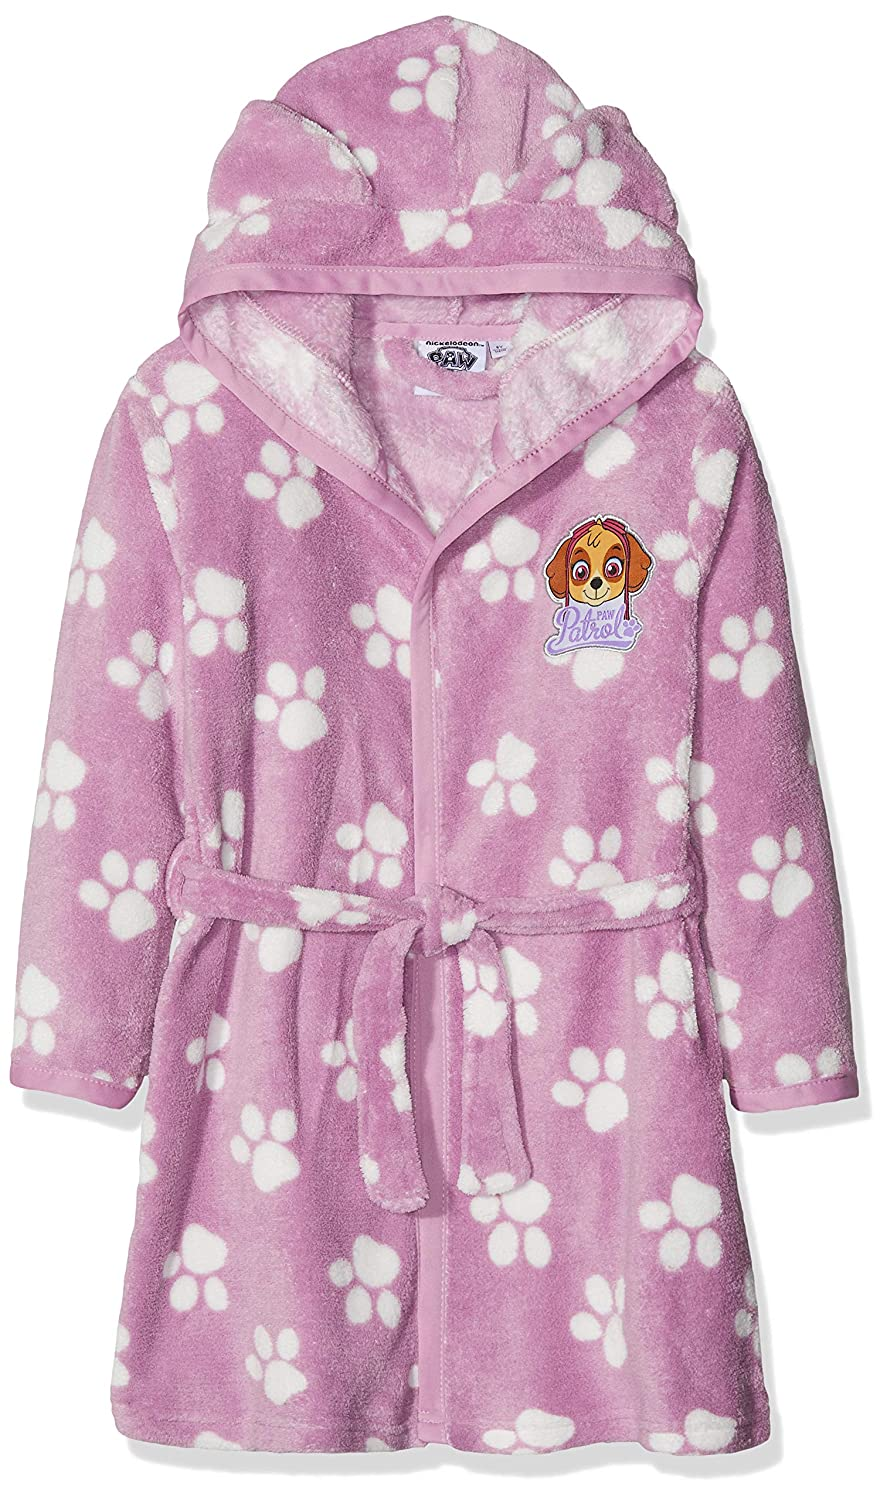 FABTASTICS Girl's Bathrobe PAW-717